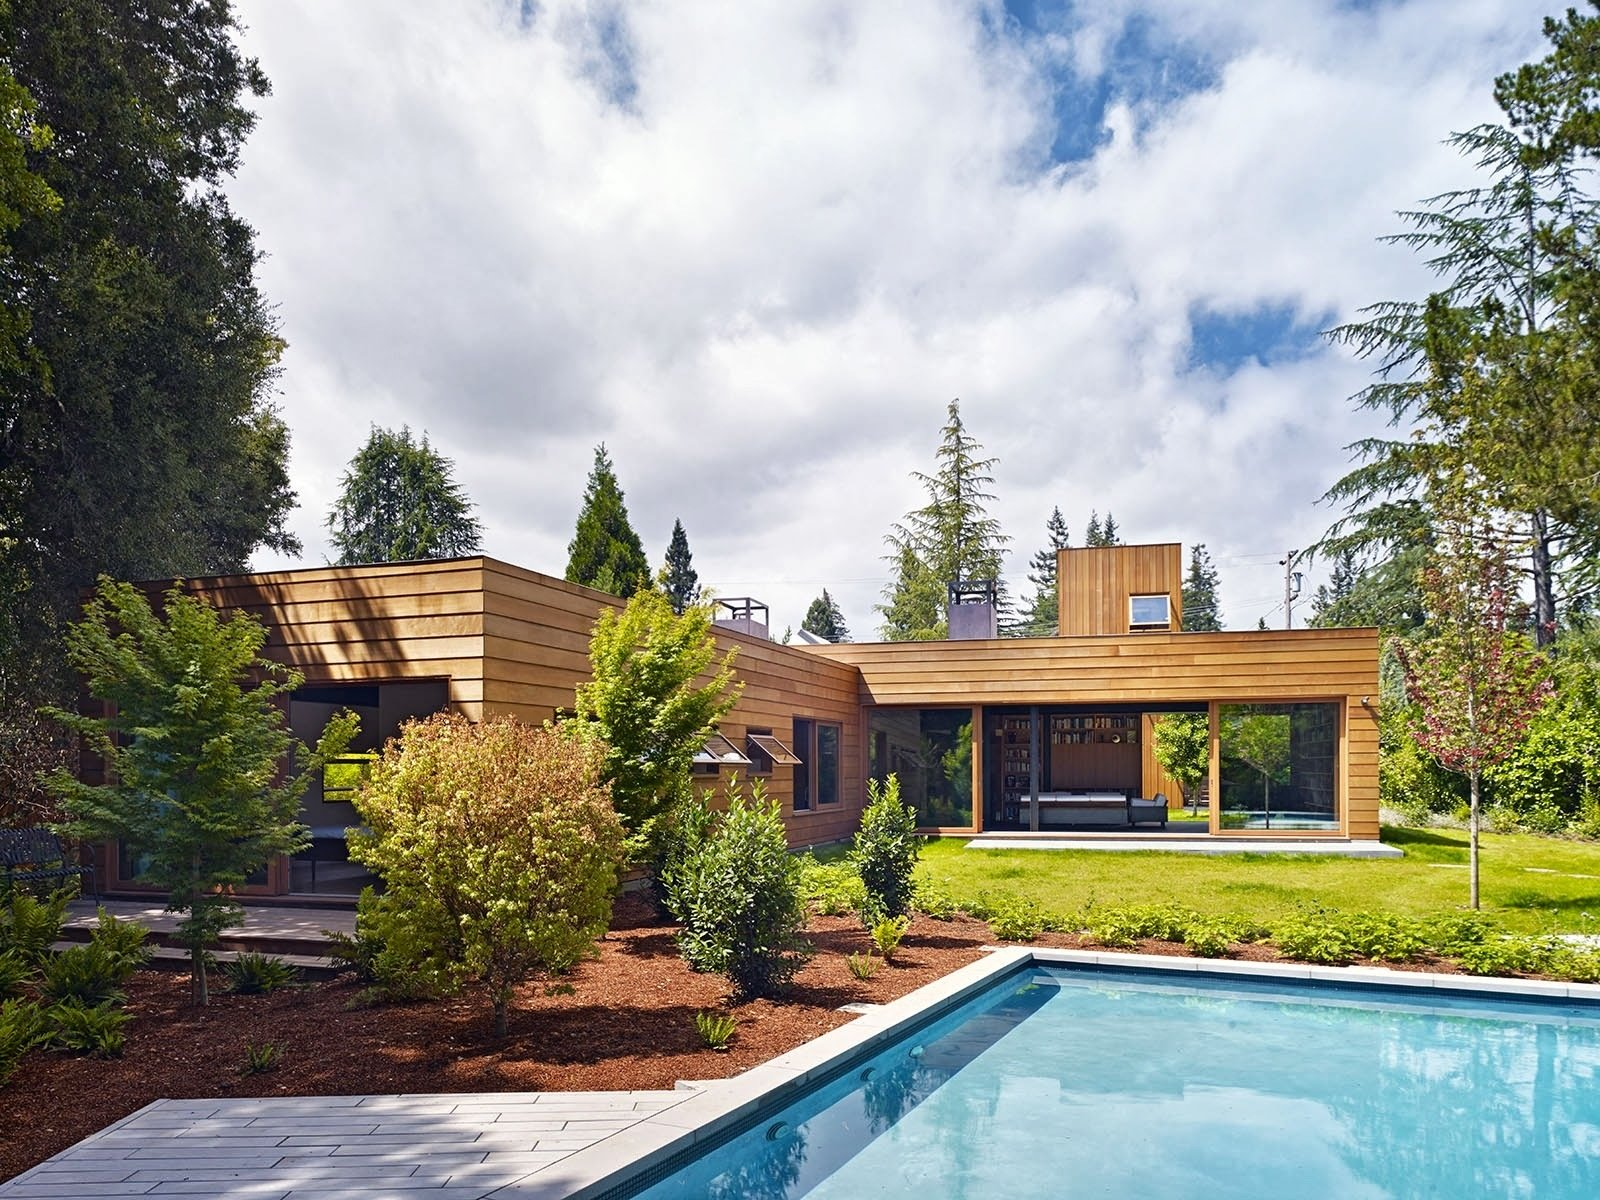 silicon valley smart home spiegel aihara workshop exterior pool